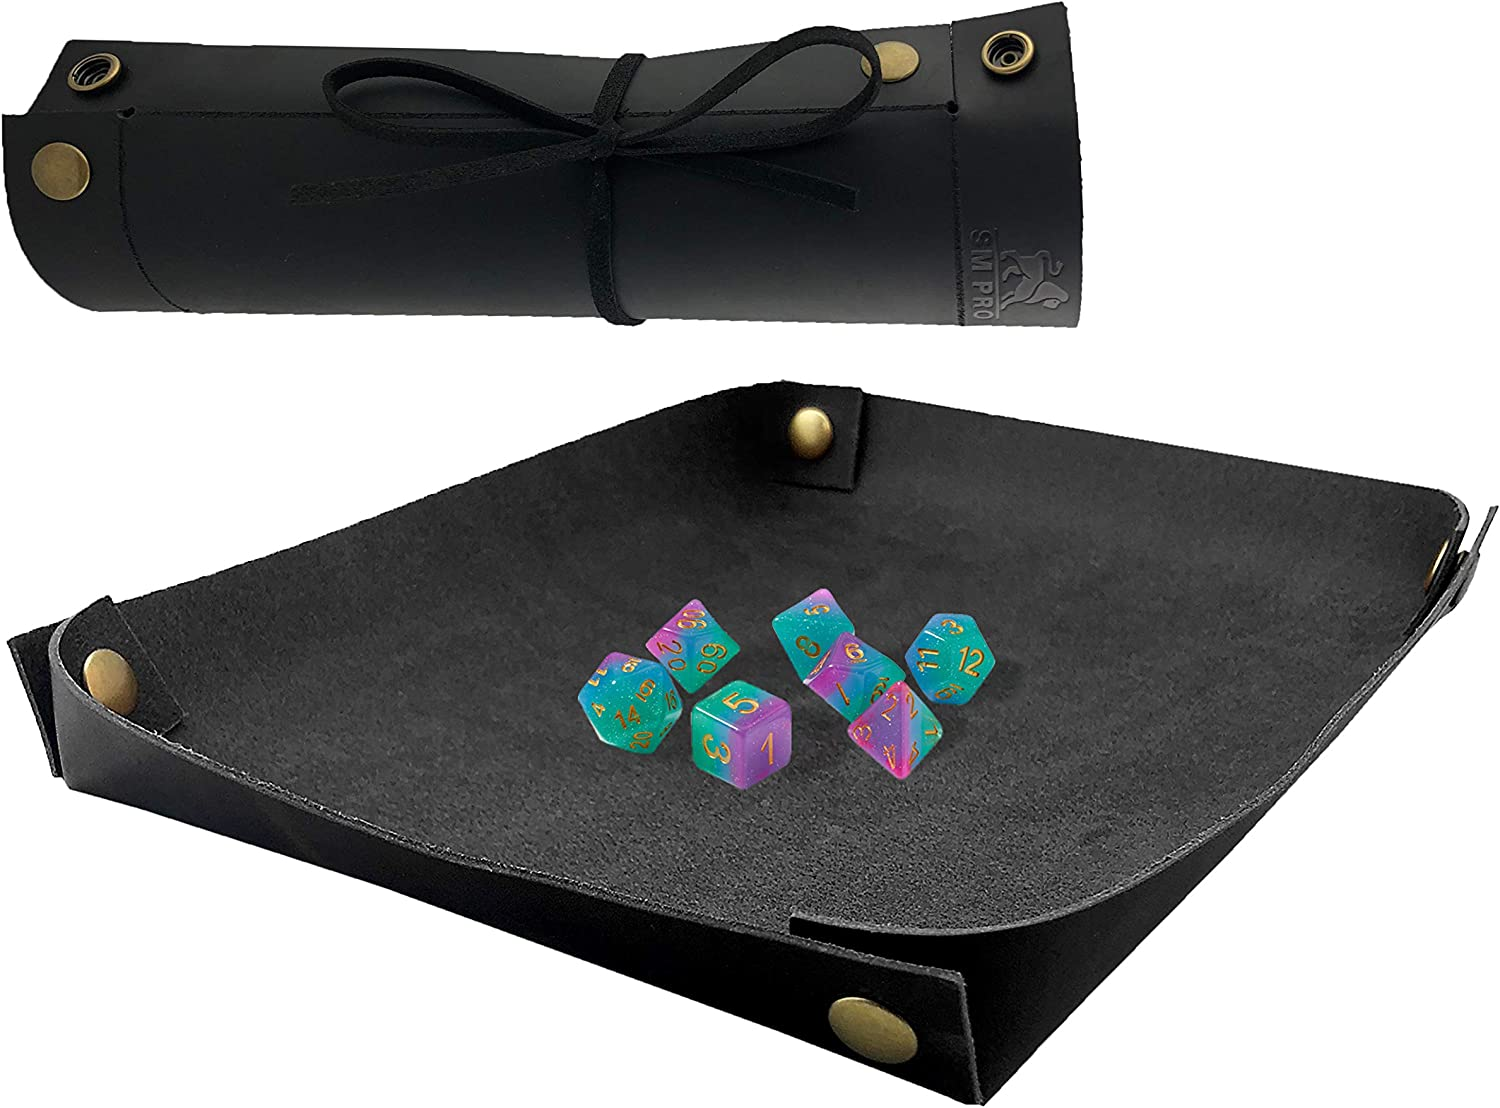 SM PRO Dice Tray - Full Grain Premium Leather Dice Mat for DND and Other RPG or Dice Rolling Games - Folding Organizer Tray for Jewelry or Keys -Portable and Collapsible for Convenience (Black)